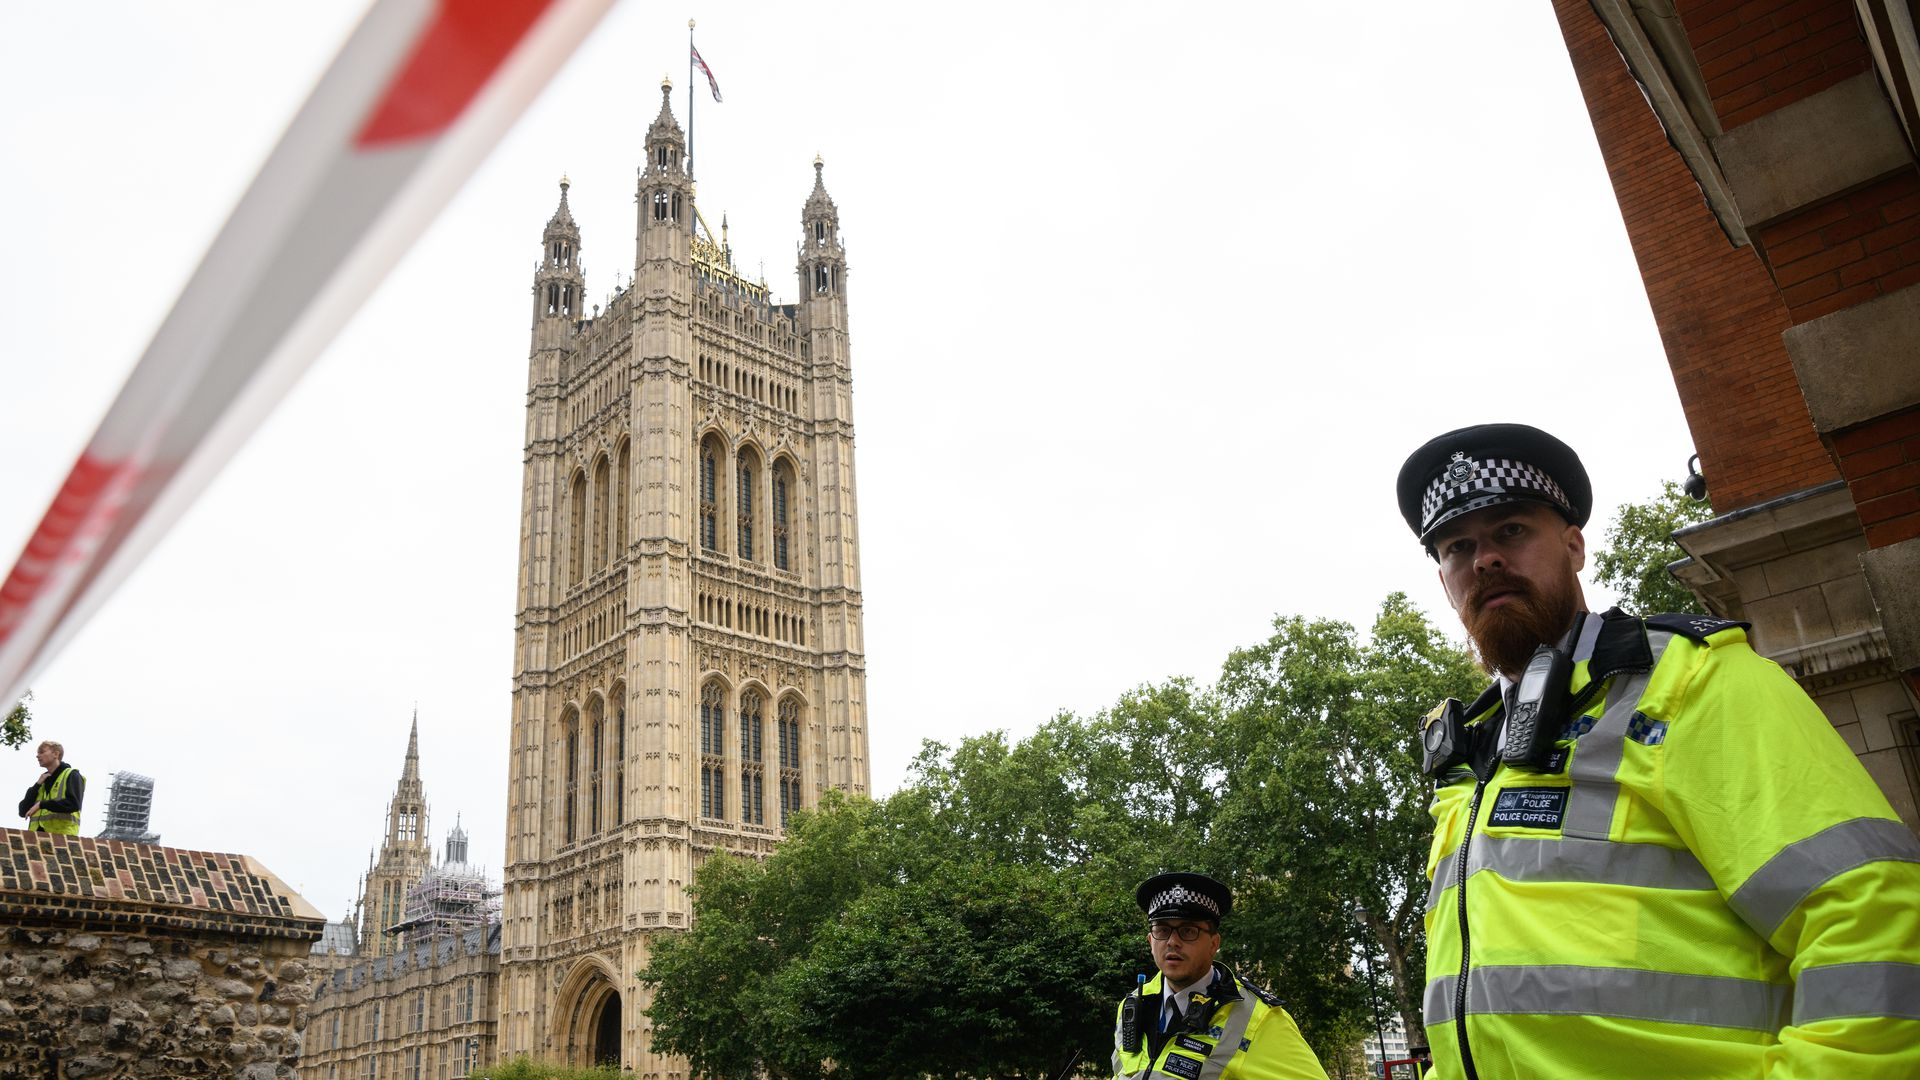 Police secure the area outside Westminster